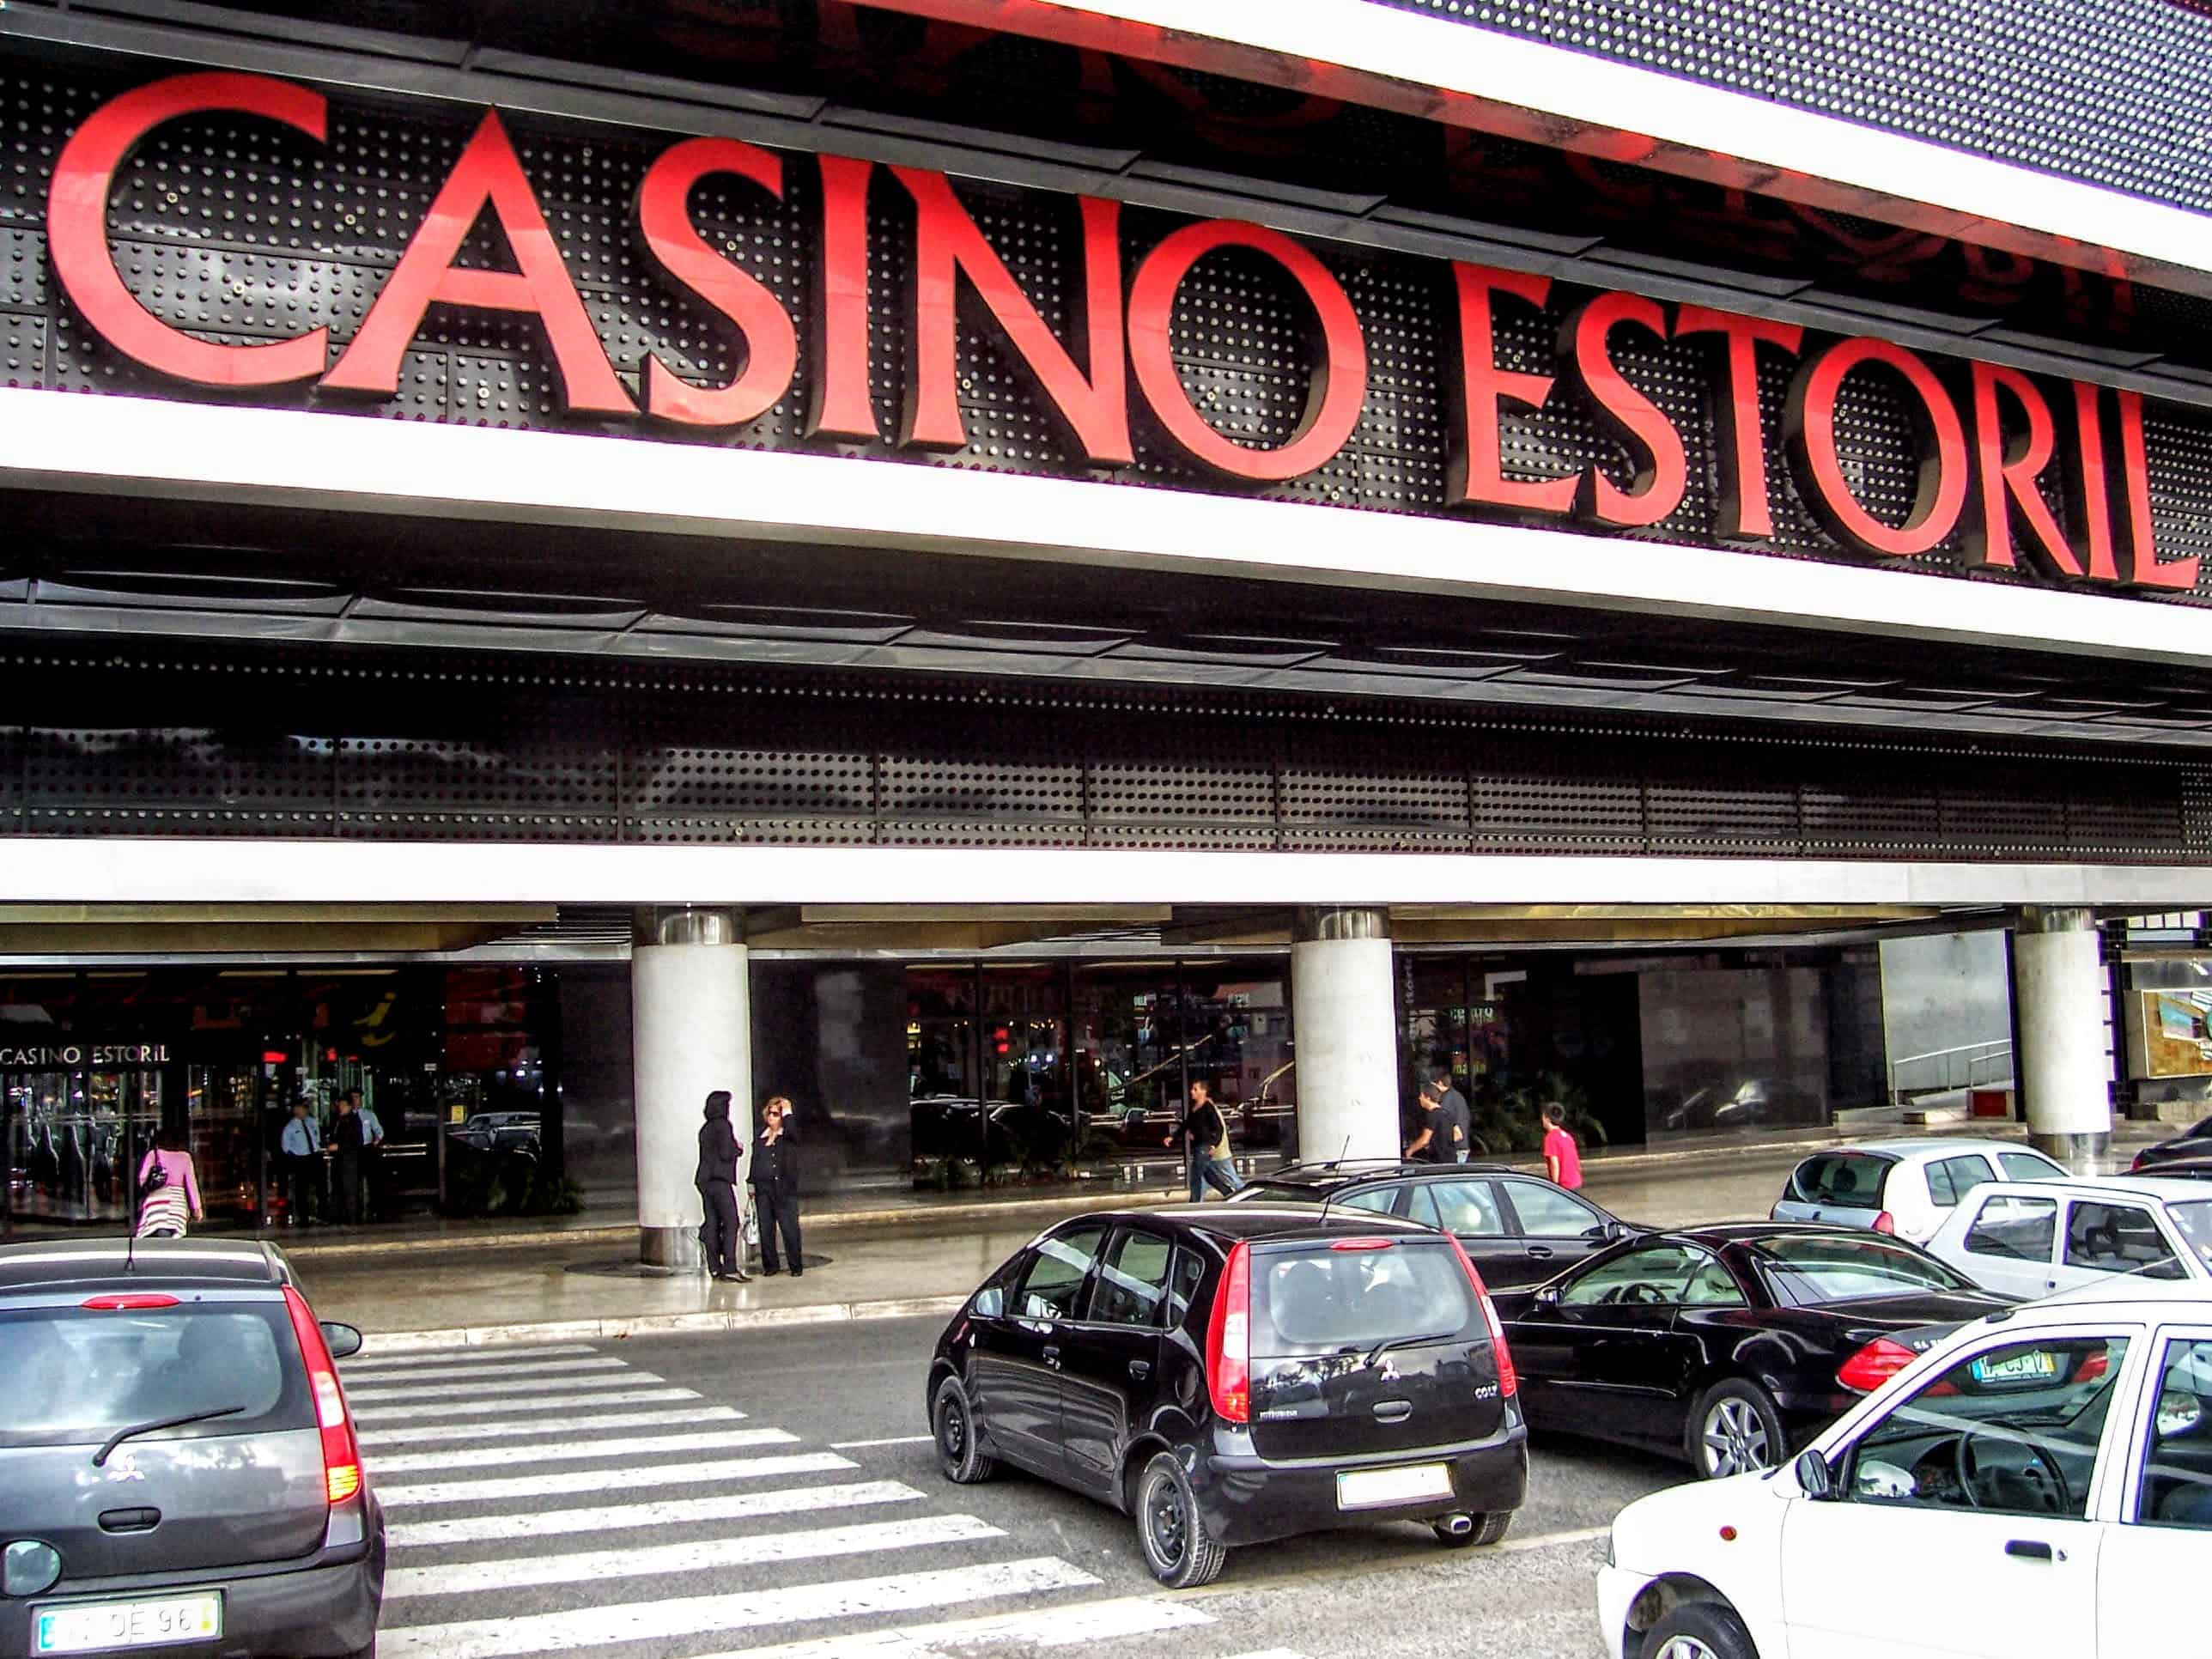 Front and entrance of the Casino Estoril, associated with James Bond